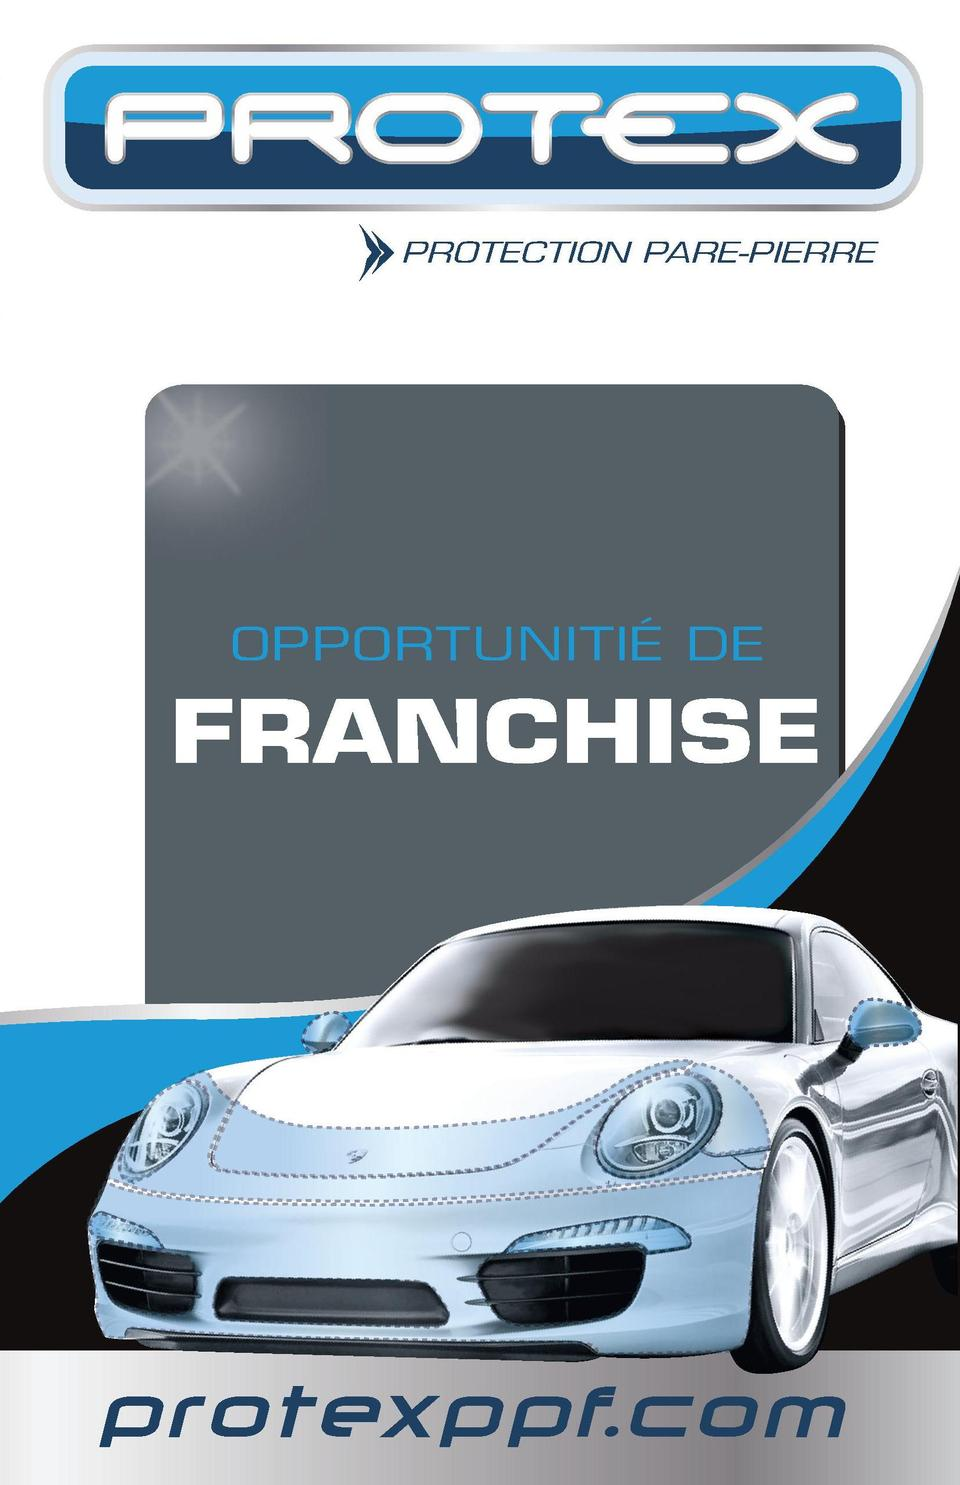 Protex Franchise_mode Cahier_FR.pdf  1  15-09-29  PROTECTION PARE-PIERRE  C  M  J  CM  MJ  15 40  PROTECTION PARE-PIERRE  ...